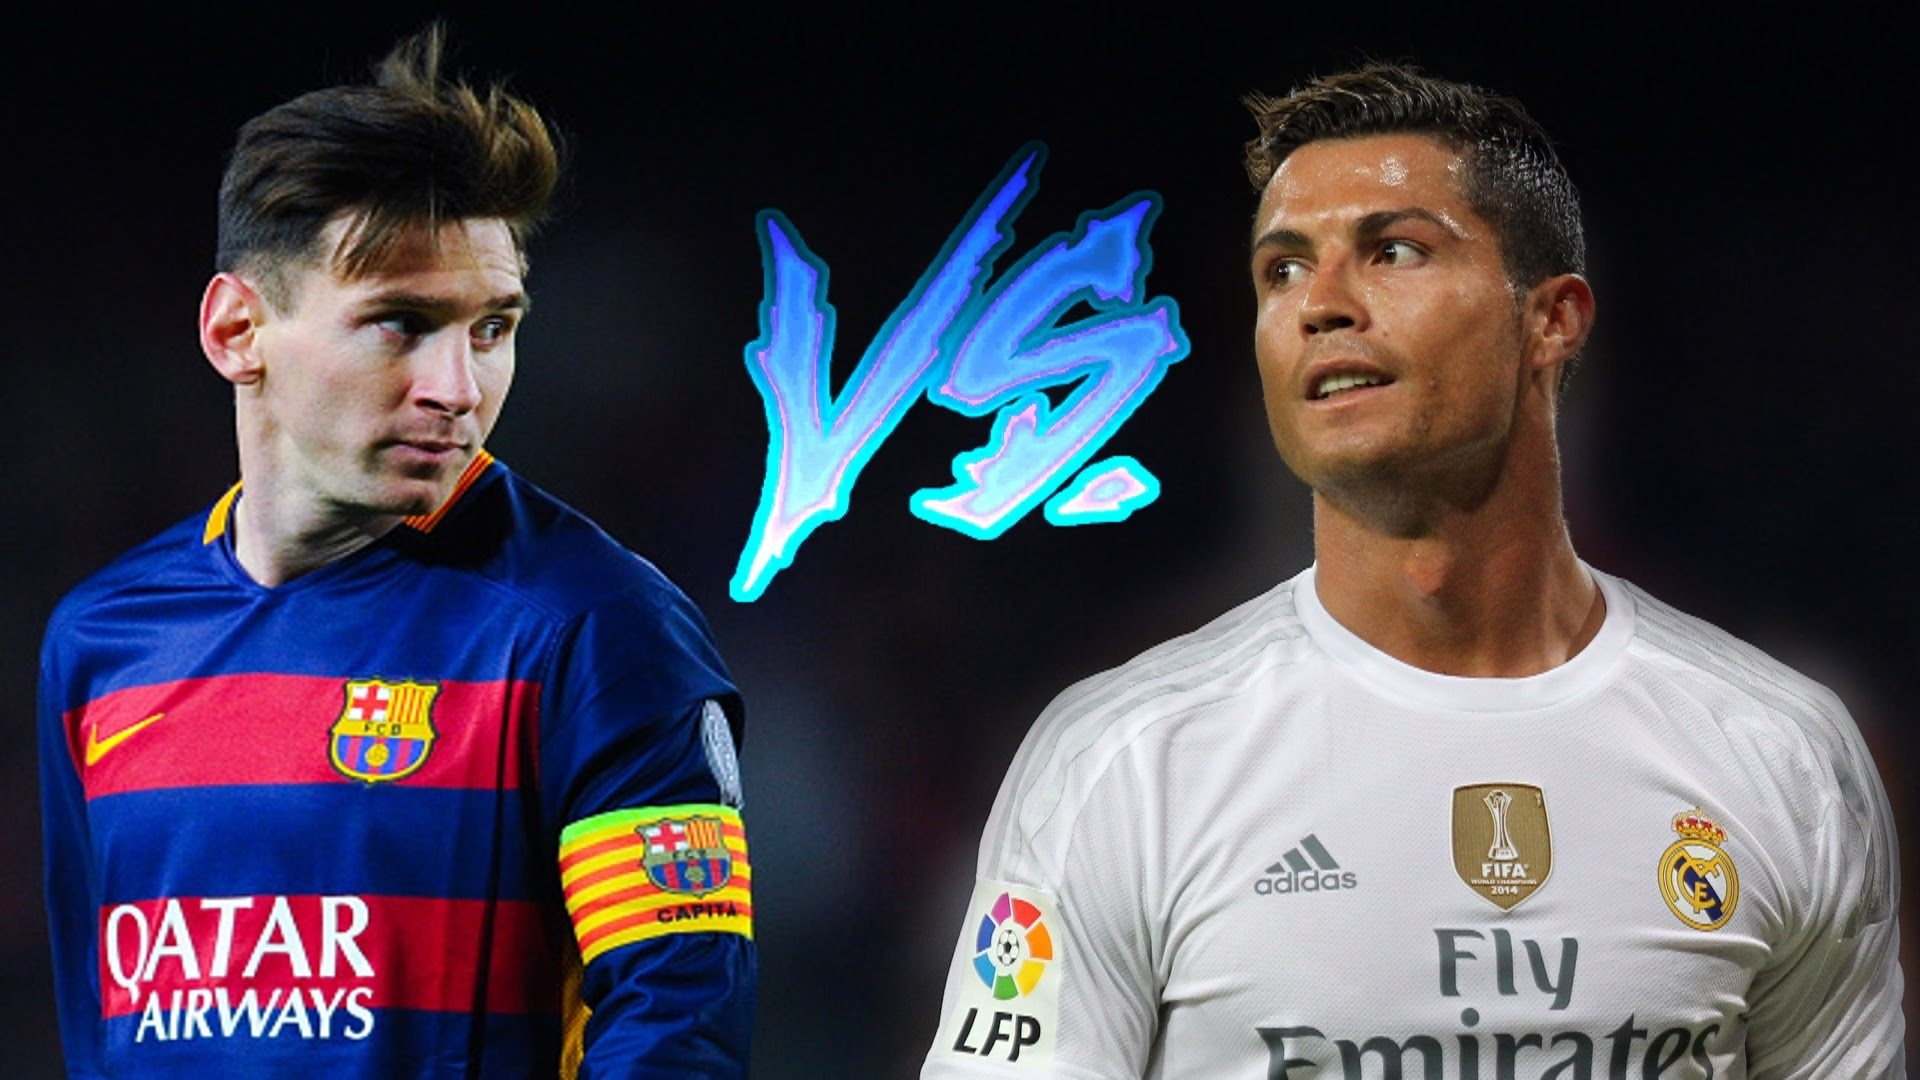 Messi Vs Ronaldo Hd Desktop Wallpaper